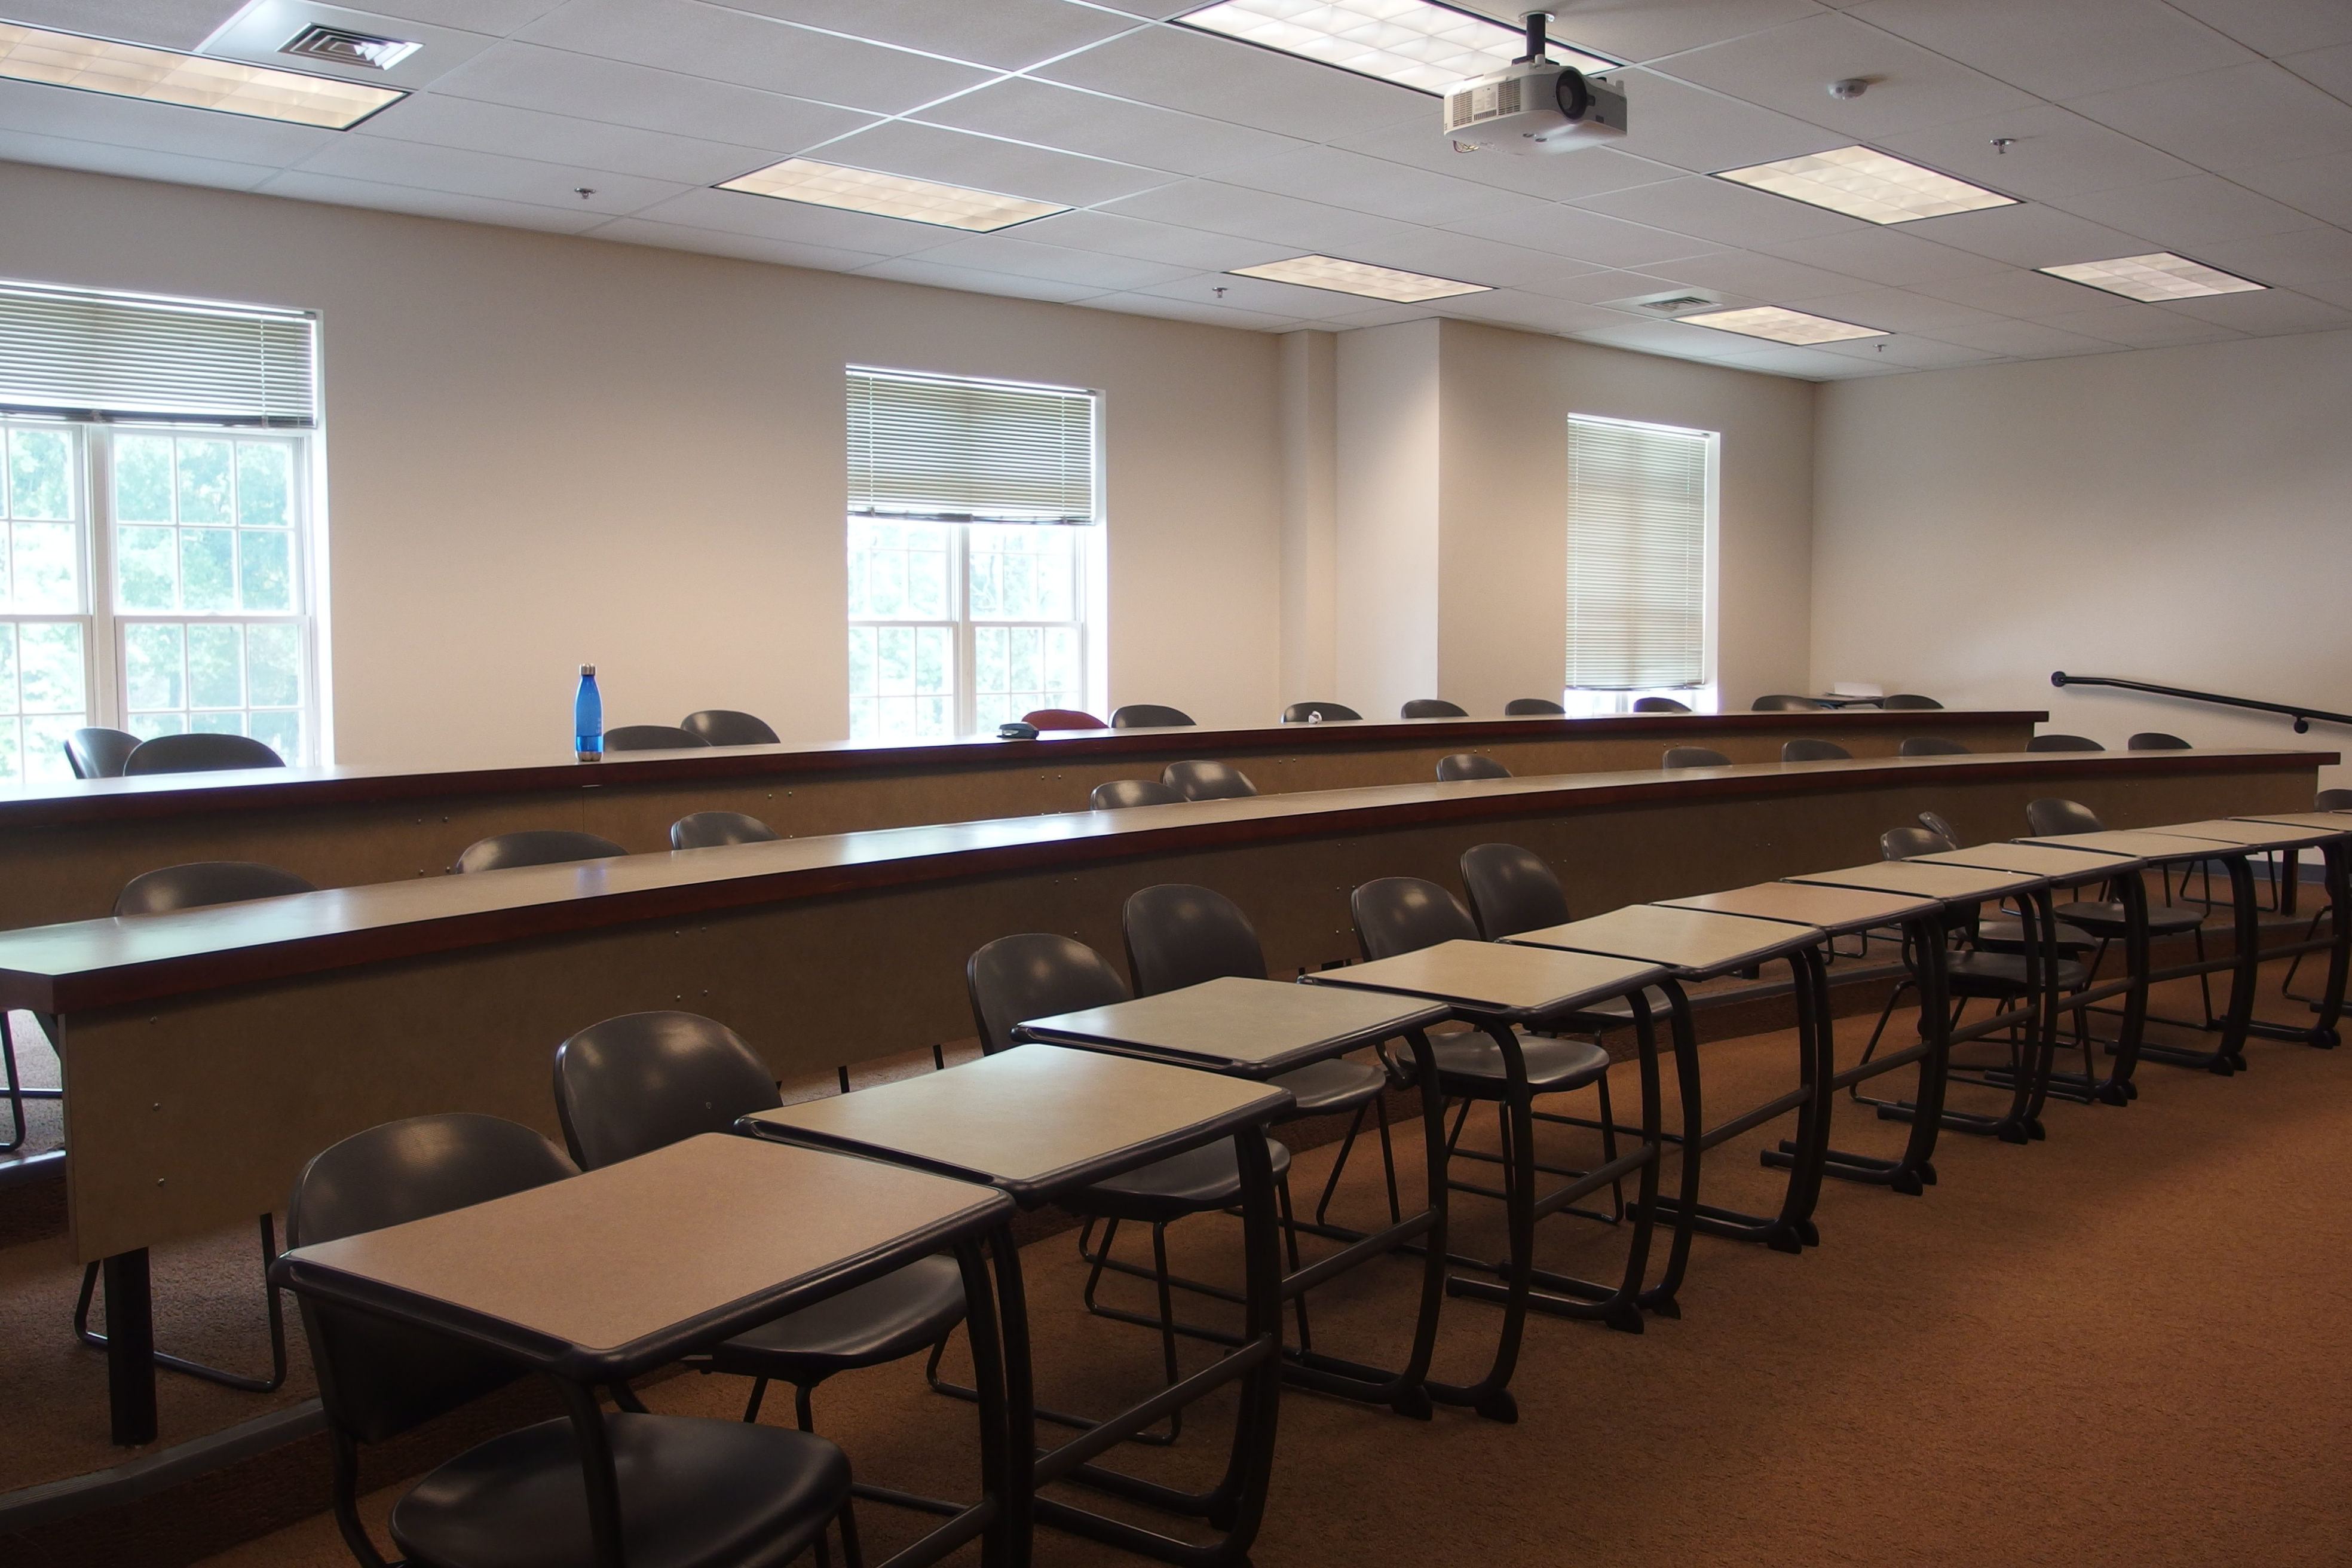 Photo of the classroom showing tiered seating taken from the front corner of the room